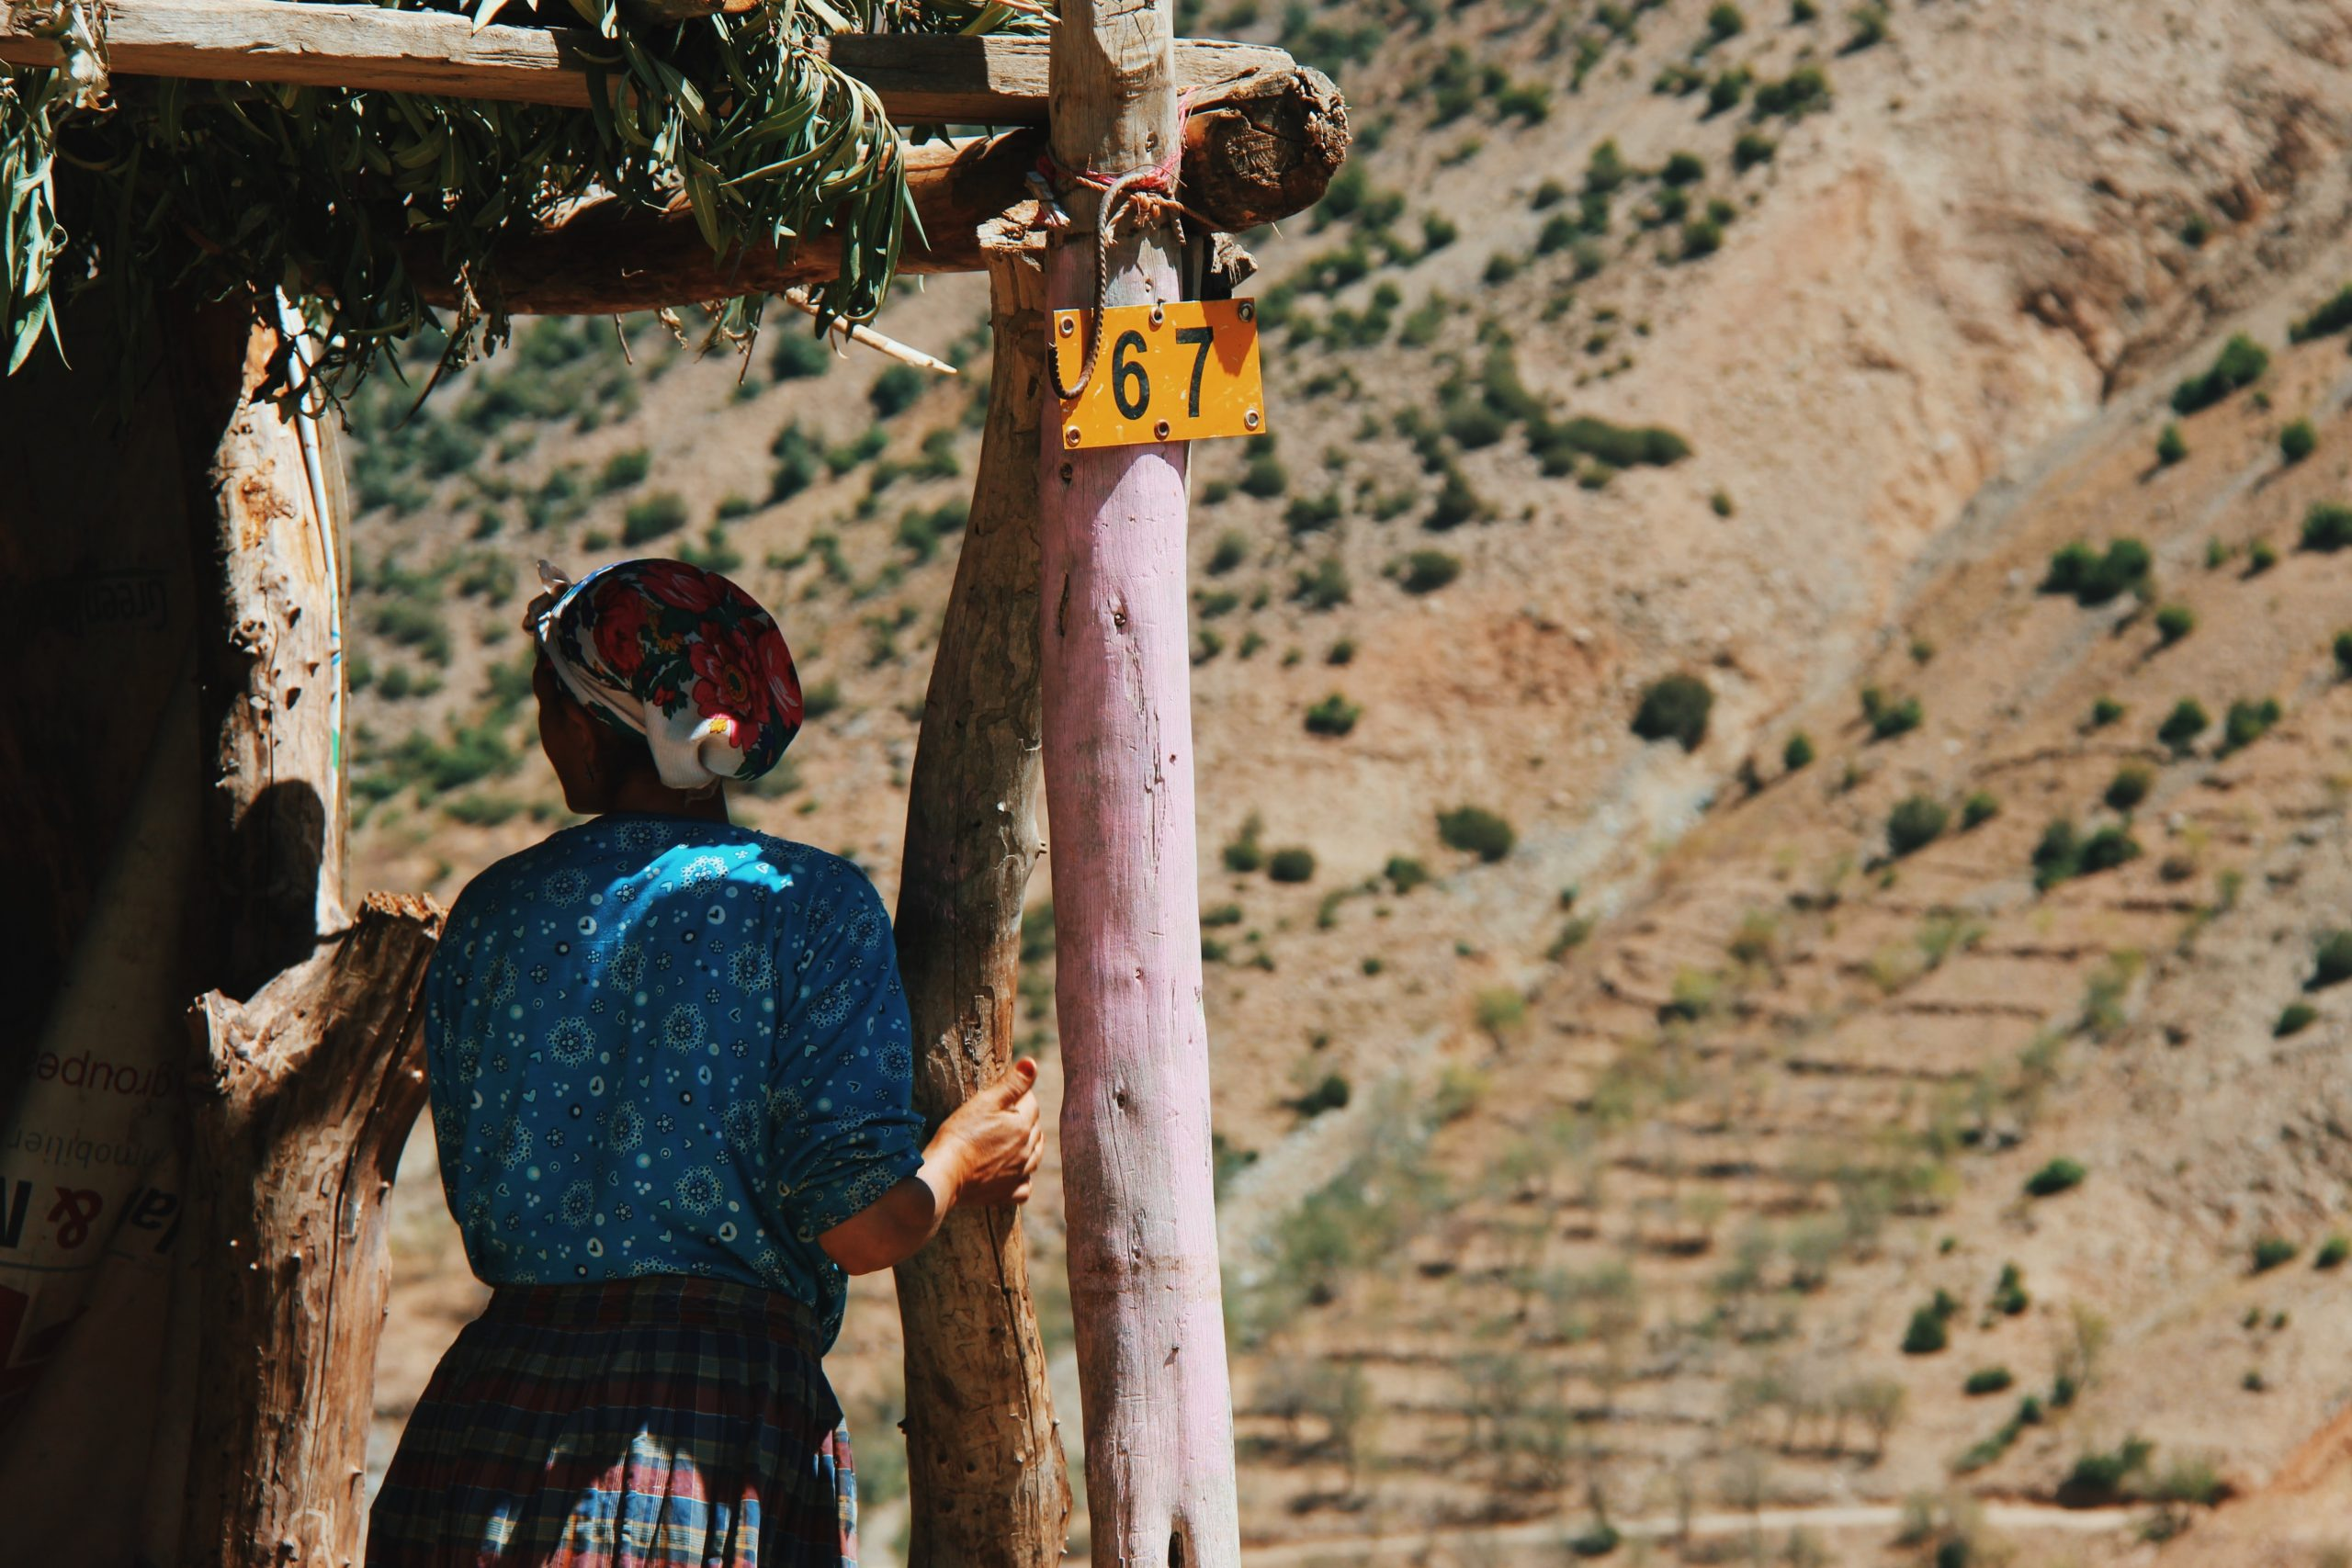 gallery image for The High Atlas Adventure